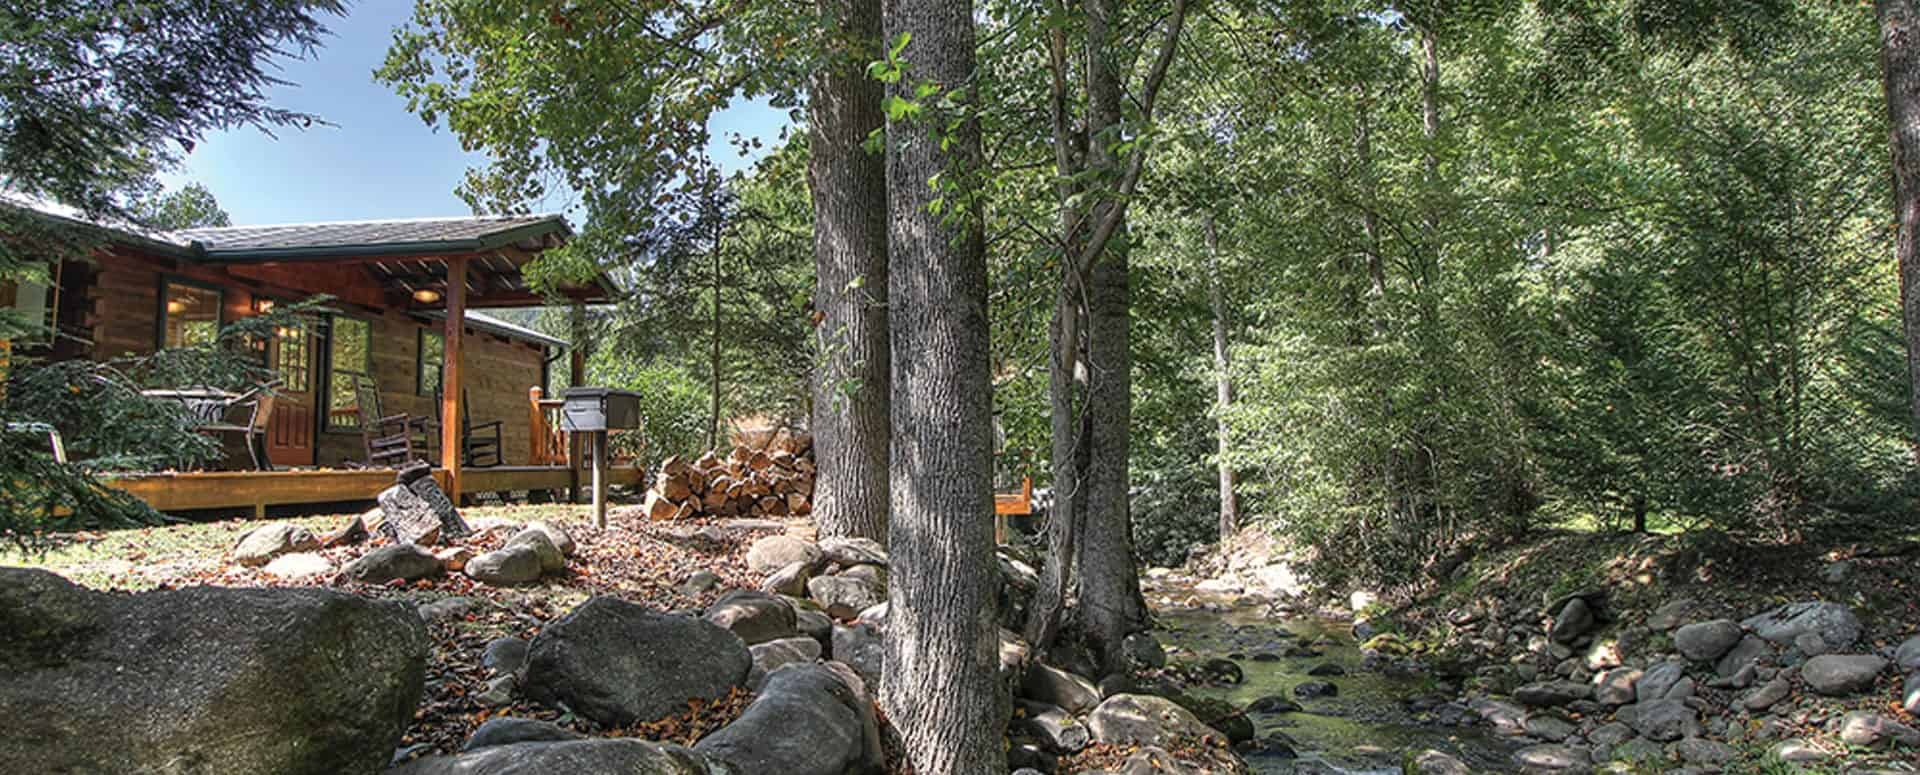 Gatlinburg cabin specials rental discounts in gatlinburg tn for Deals cabins gatlinburg tn